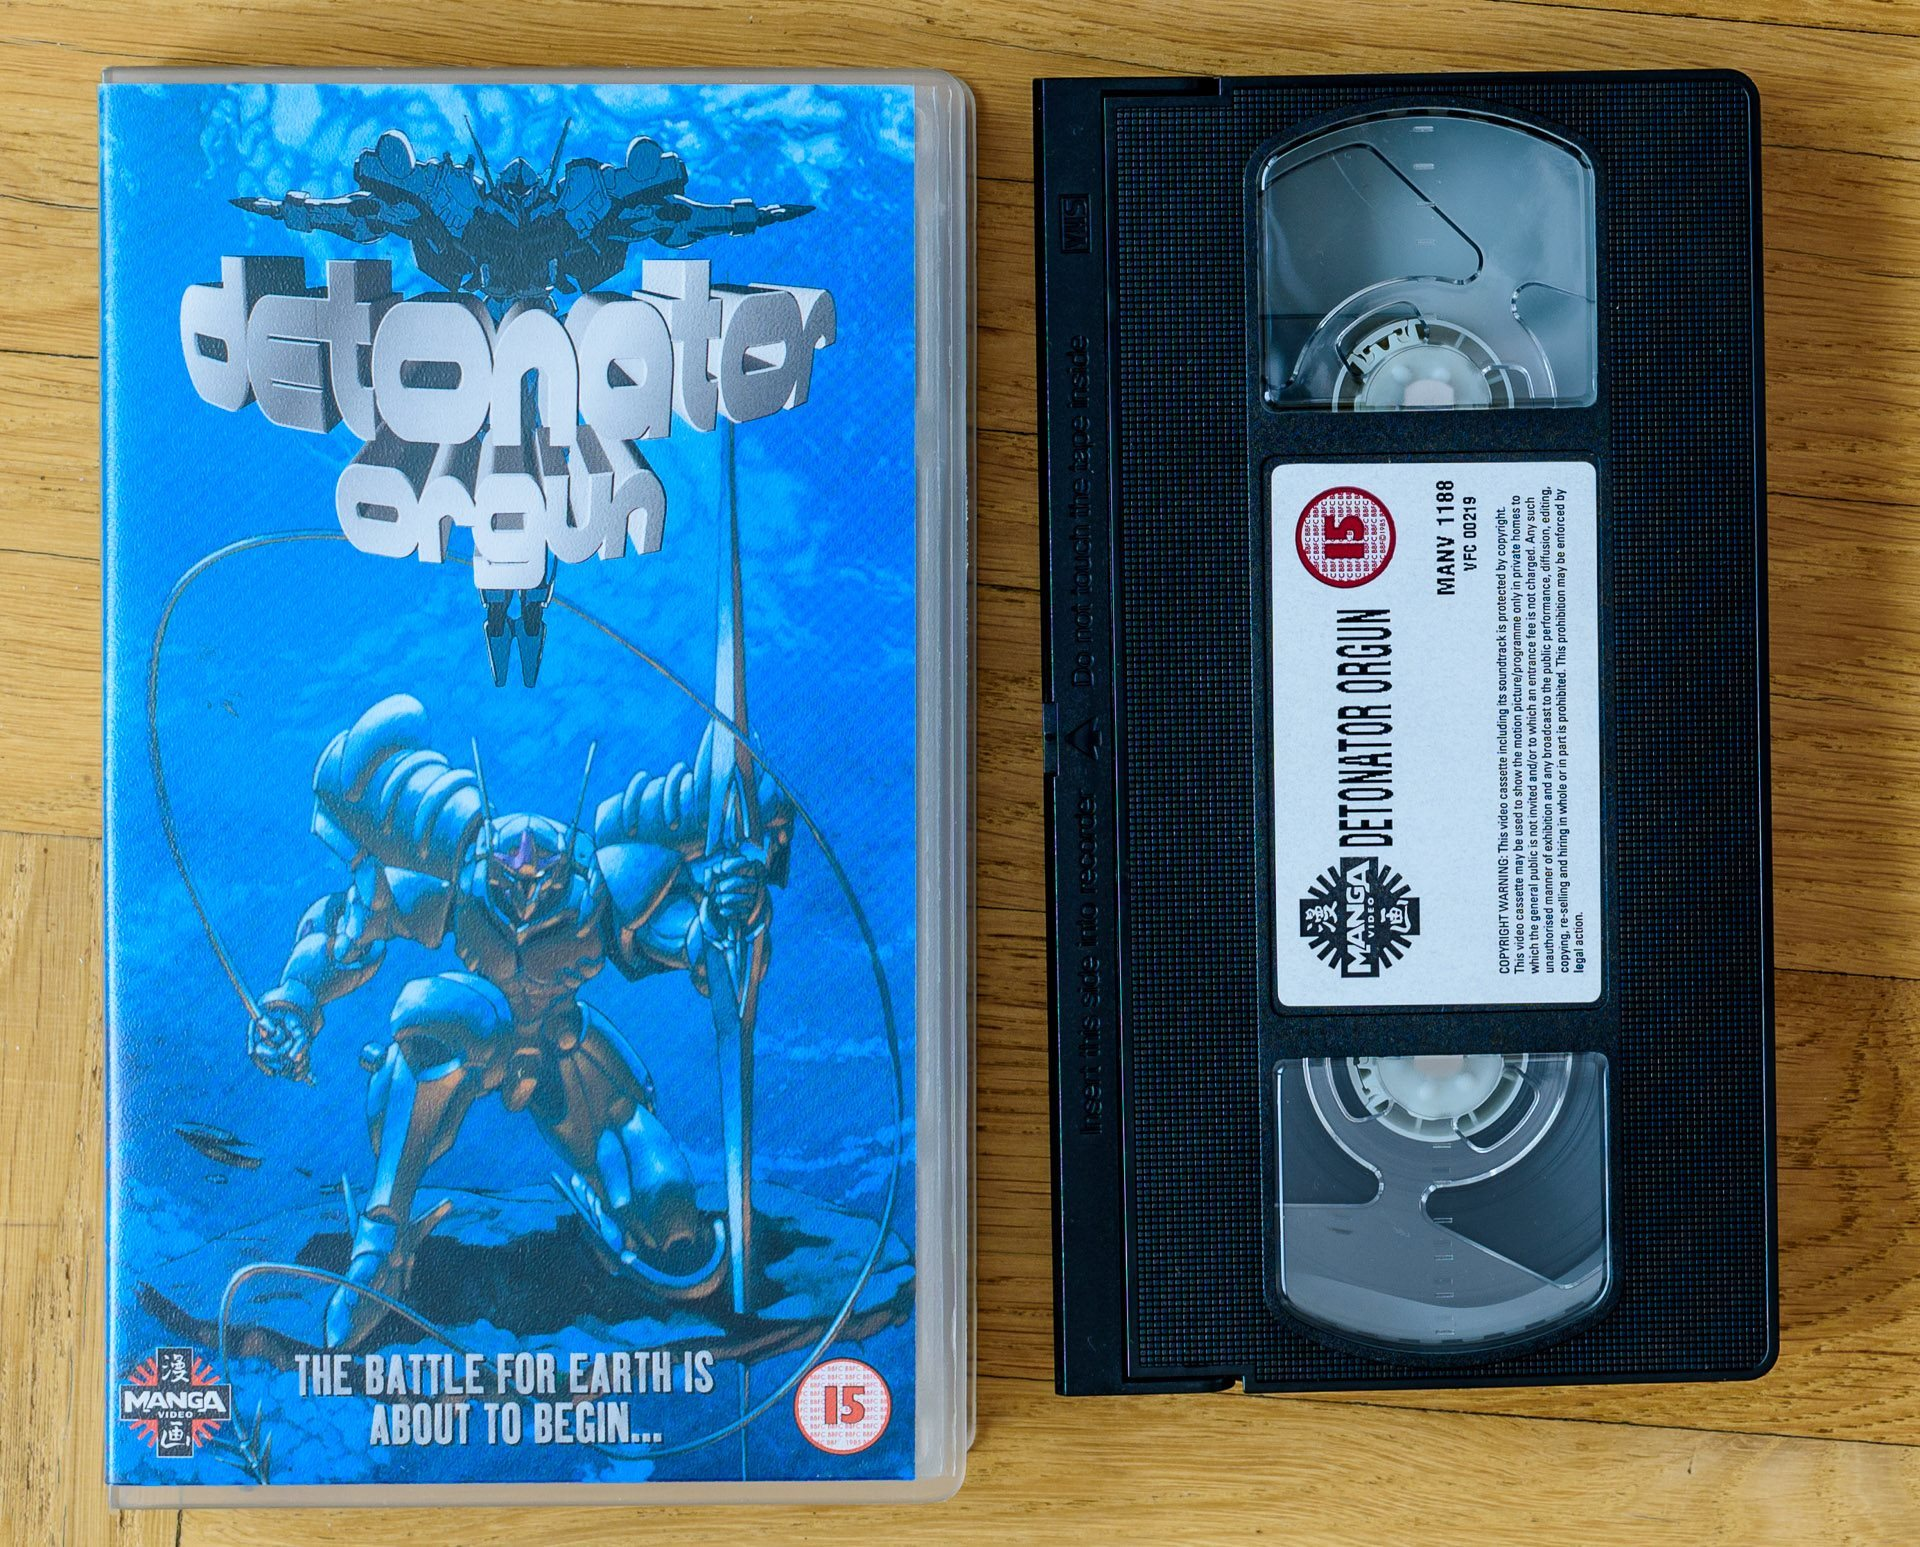 Detonator Orgun - Manga Video - PAL VHS - 1997 (353166587